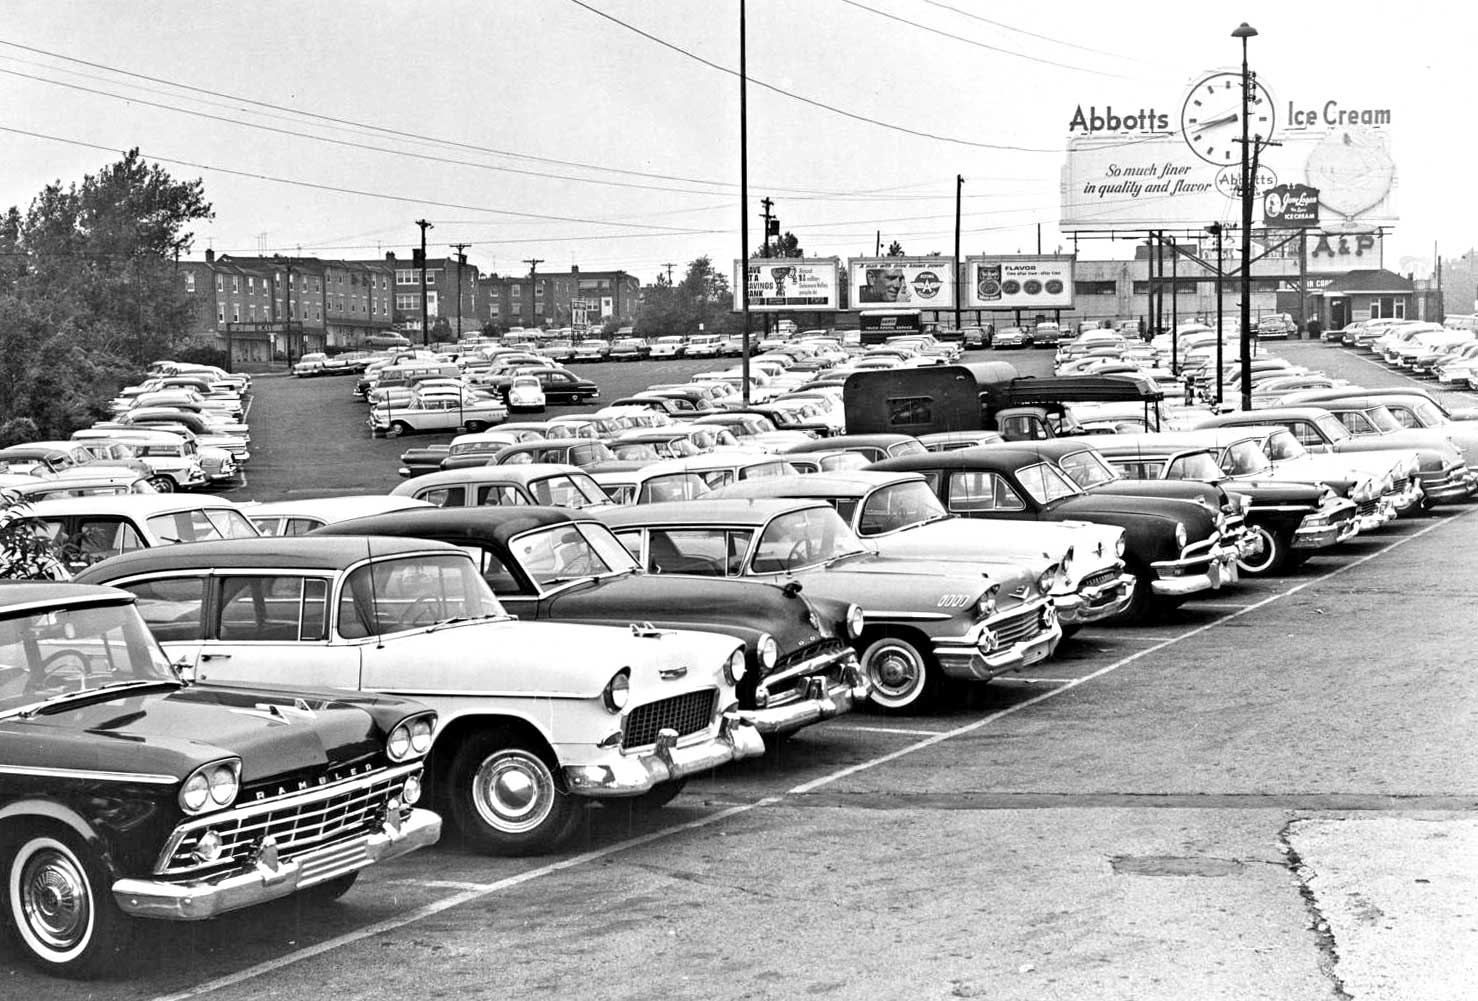 Pin by JKPL1313 on Street 2 Old classic cars, Vintage